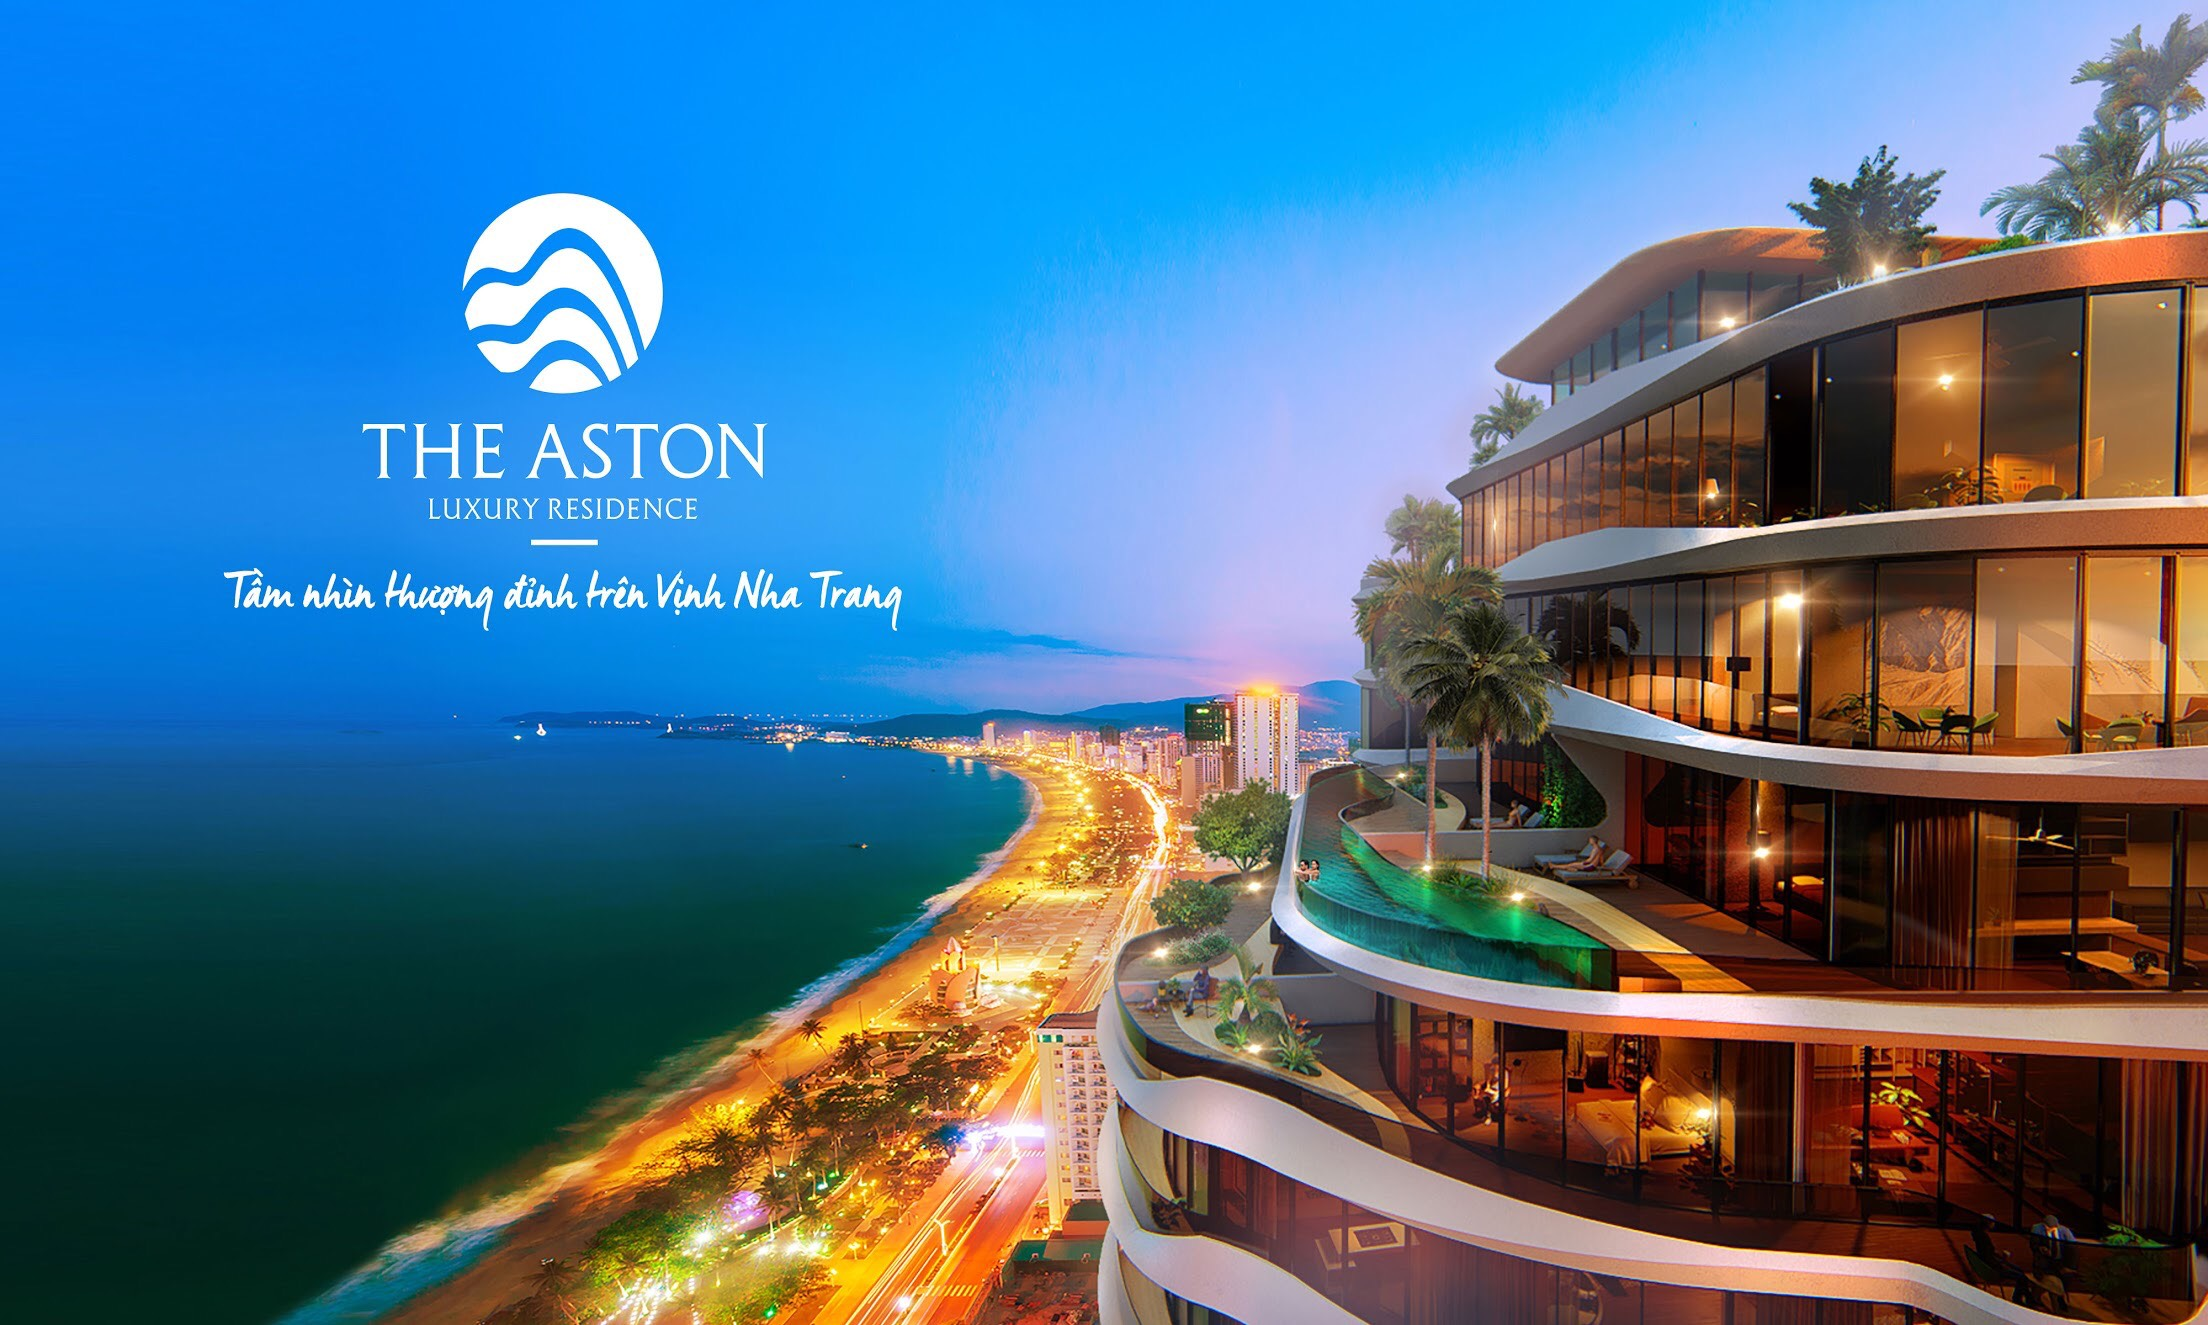 THE ASTON LUXURY RESIDENCE